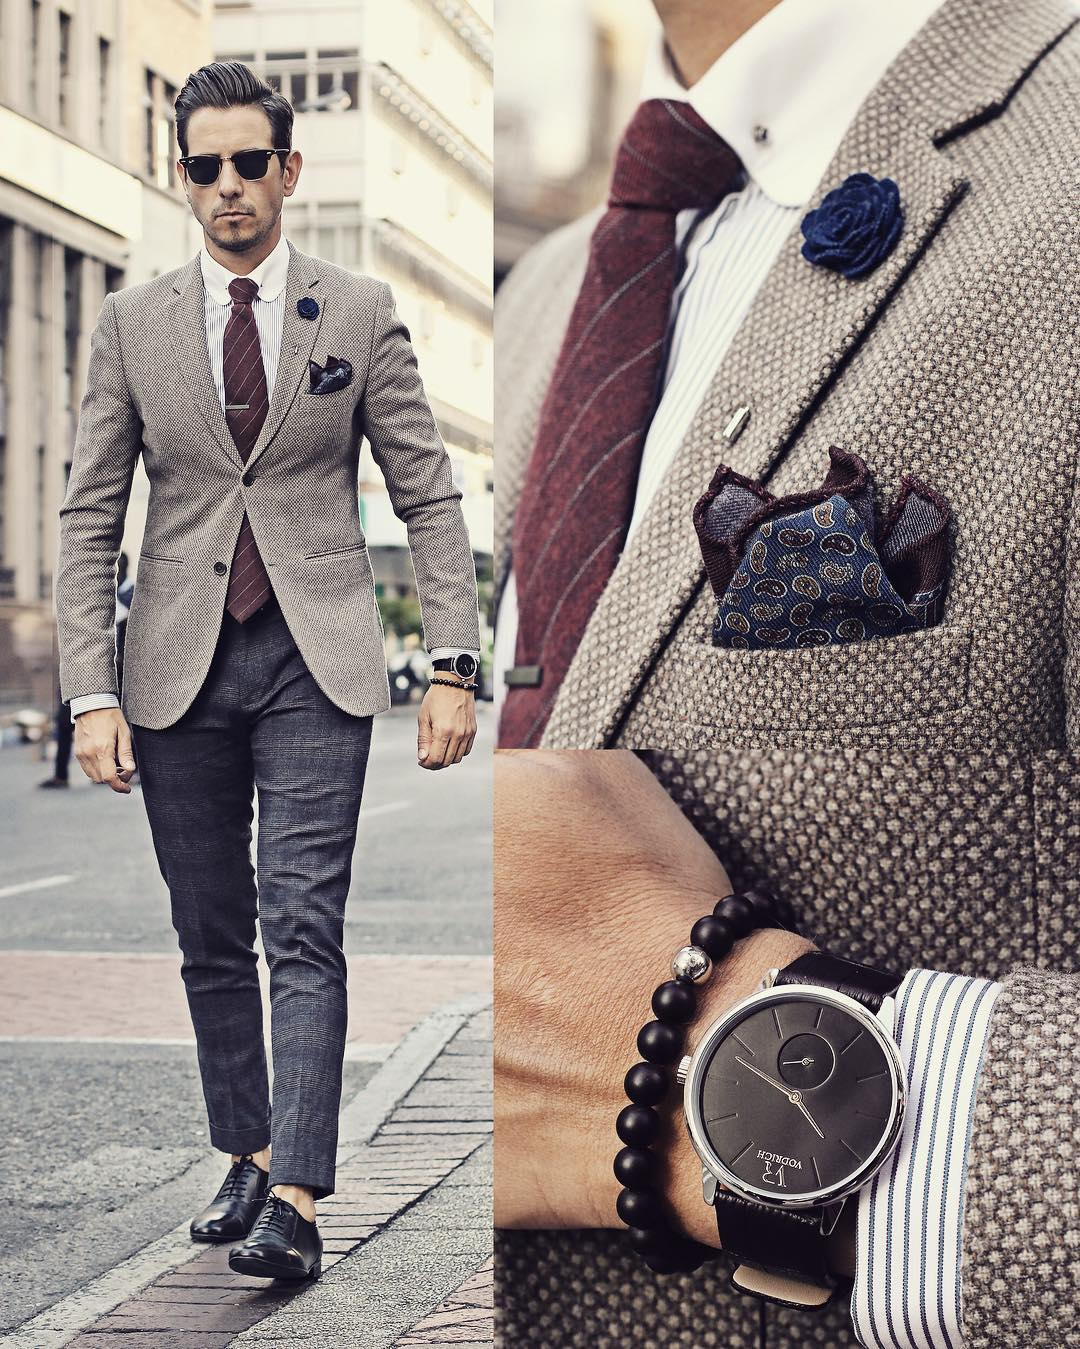 Suit Watch And Shoes Combinations For Men